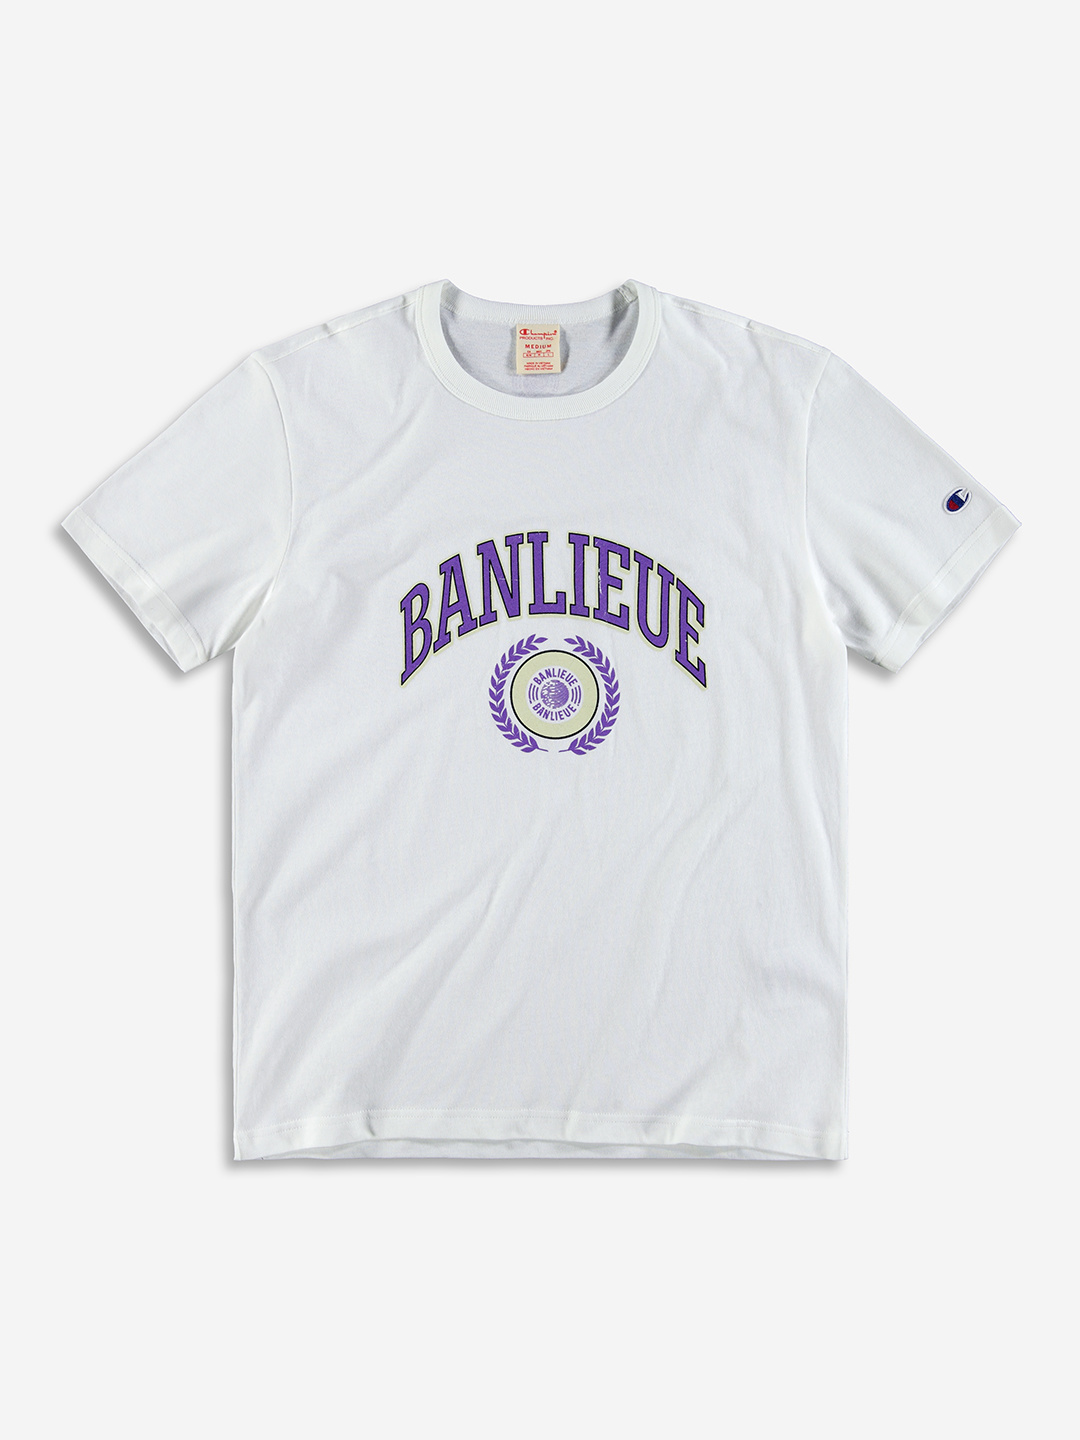 BANLIEUE X CHAMPION T-SHIRT WHITE